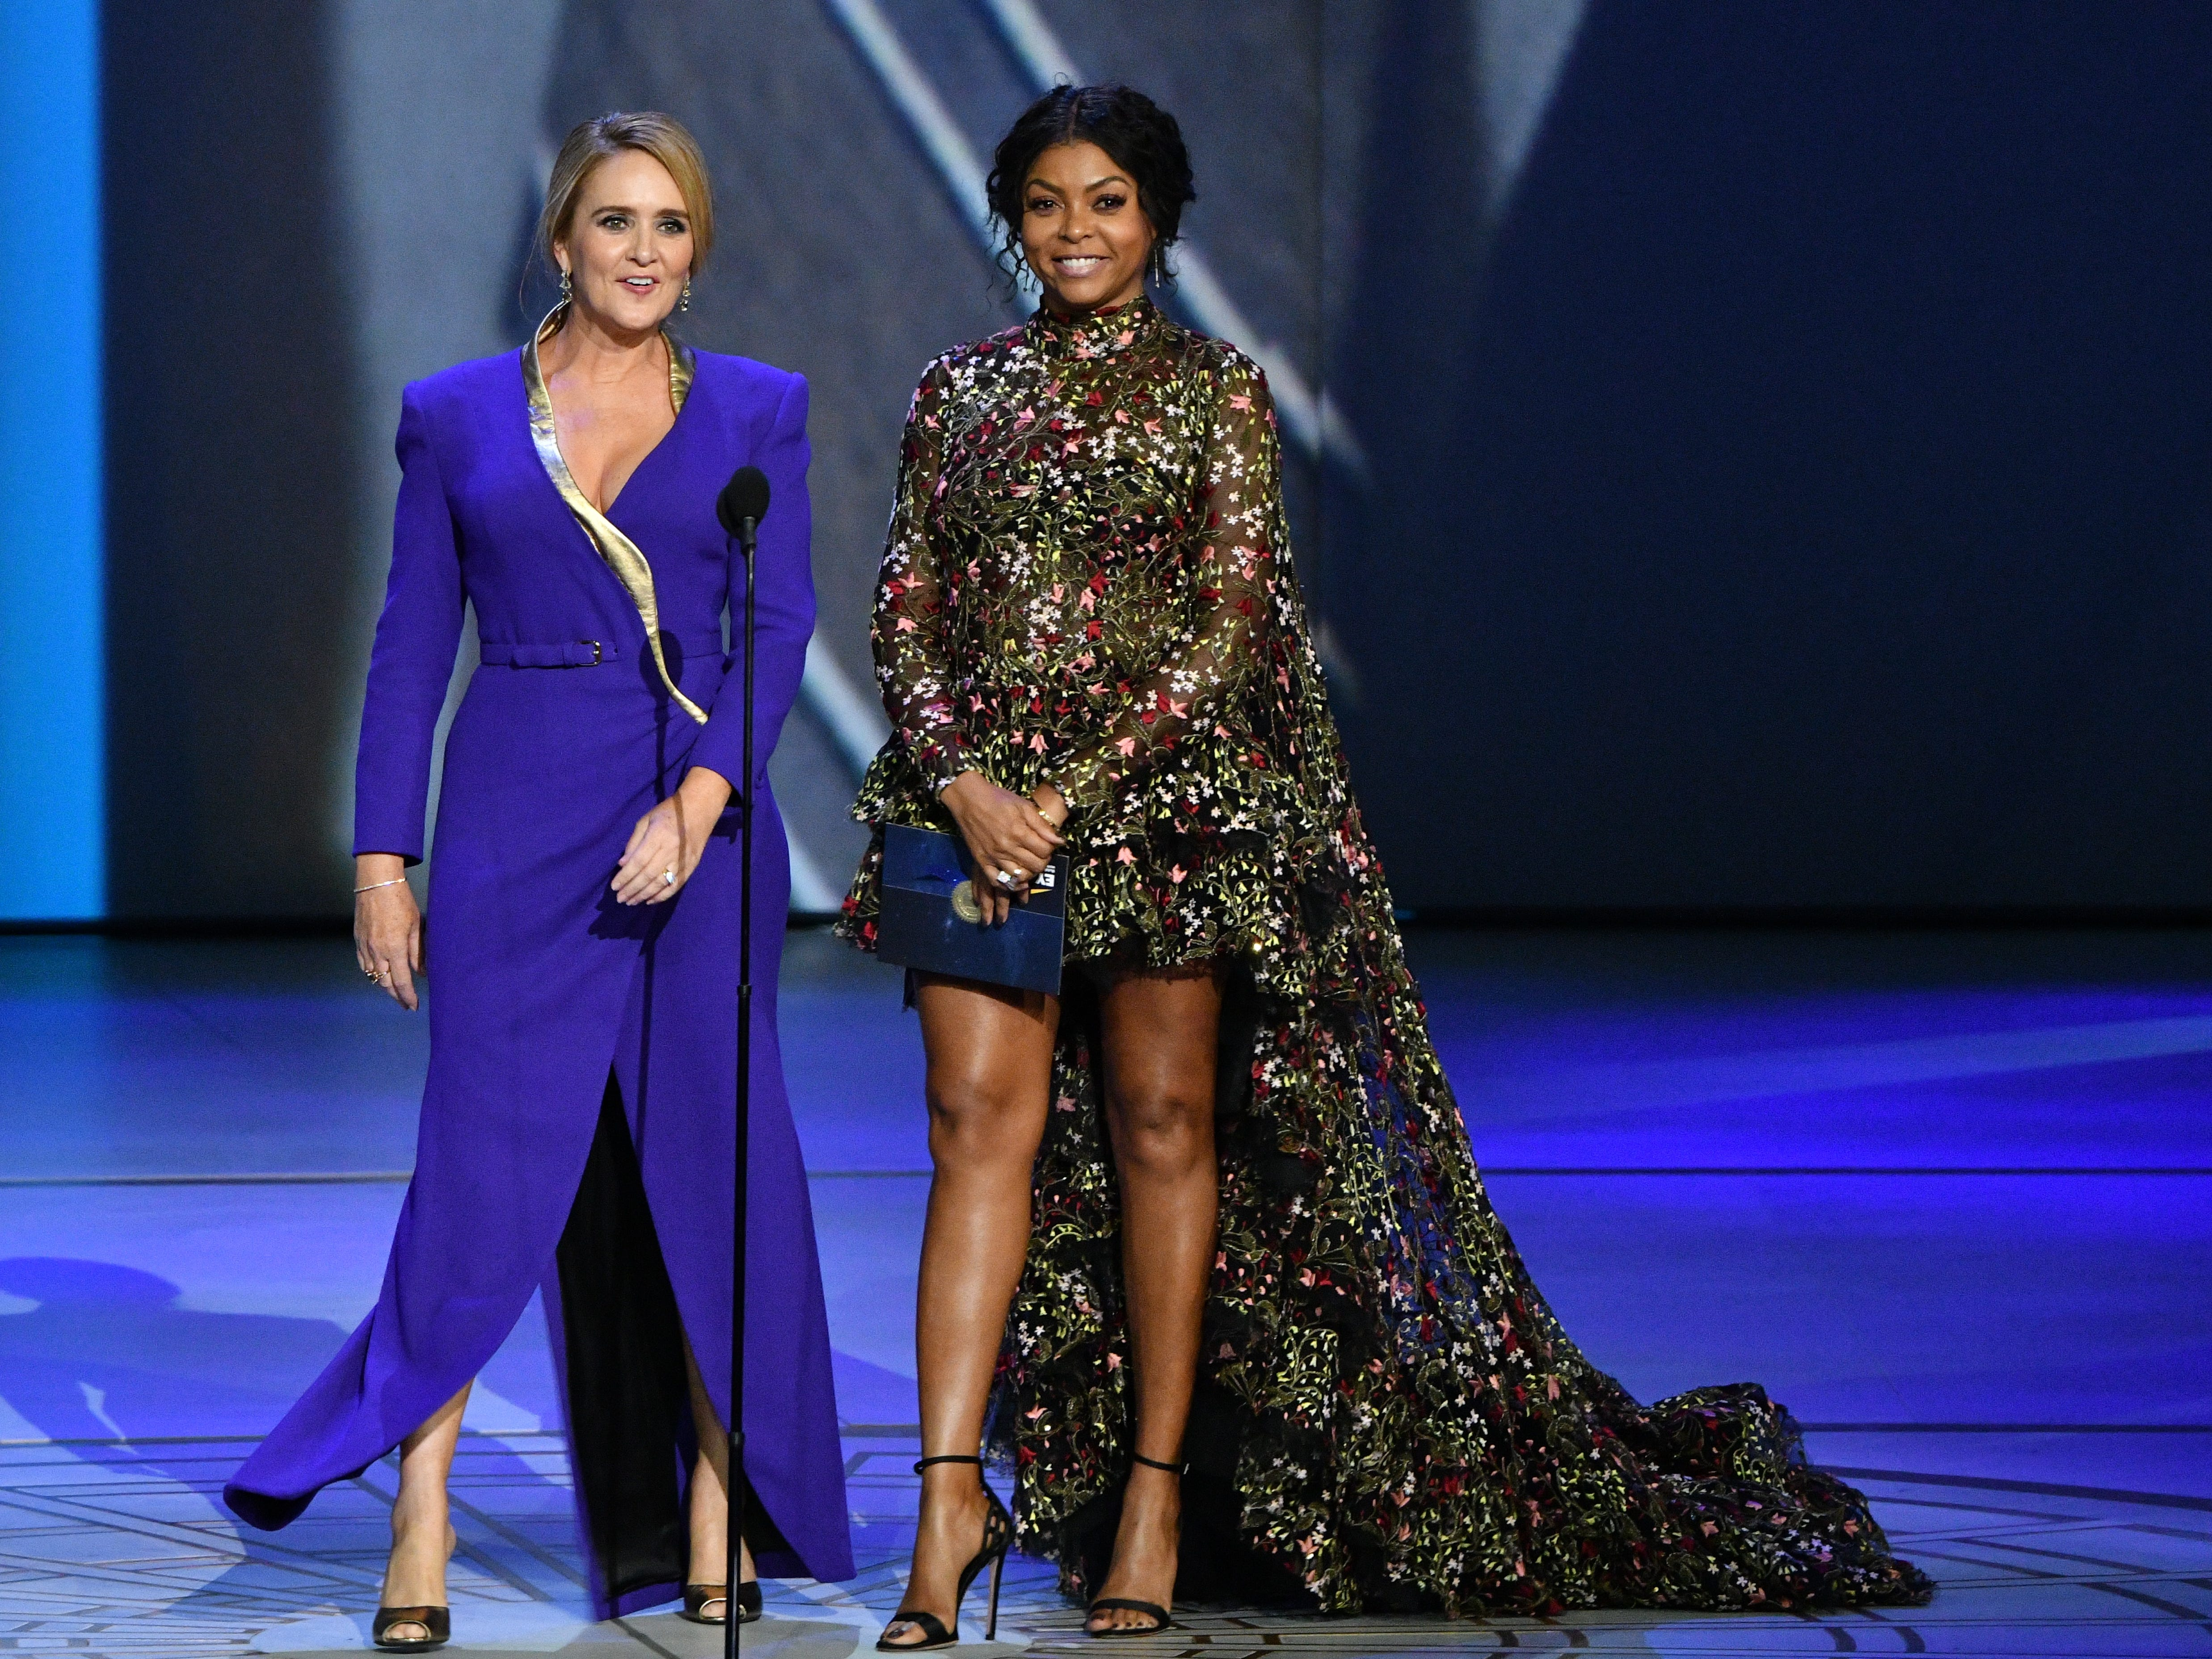 Samantha Bee, left, and Taraji P. Henson present the award for supporting actor in a drama series.